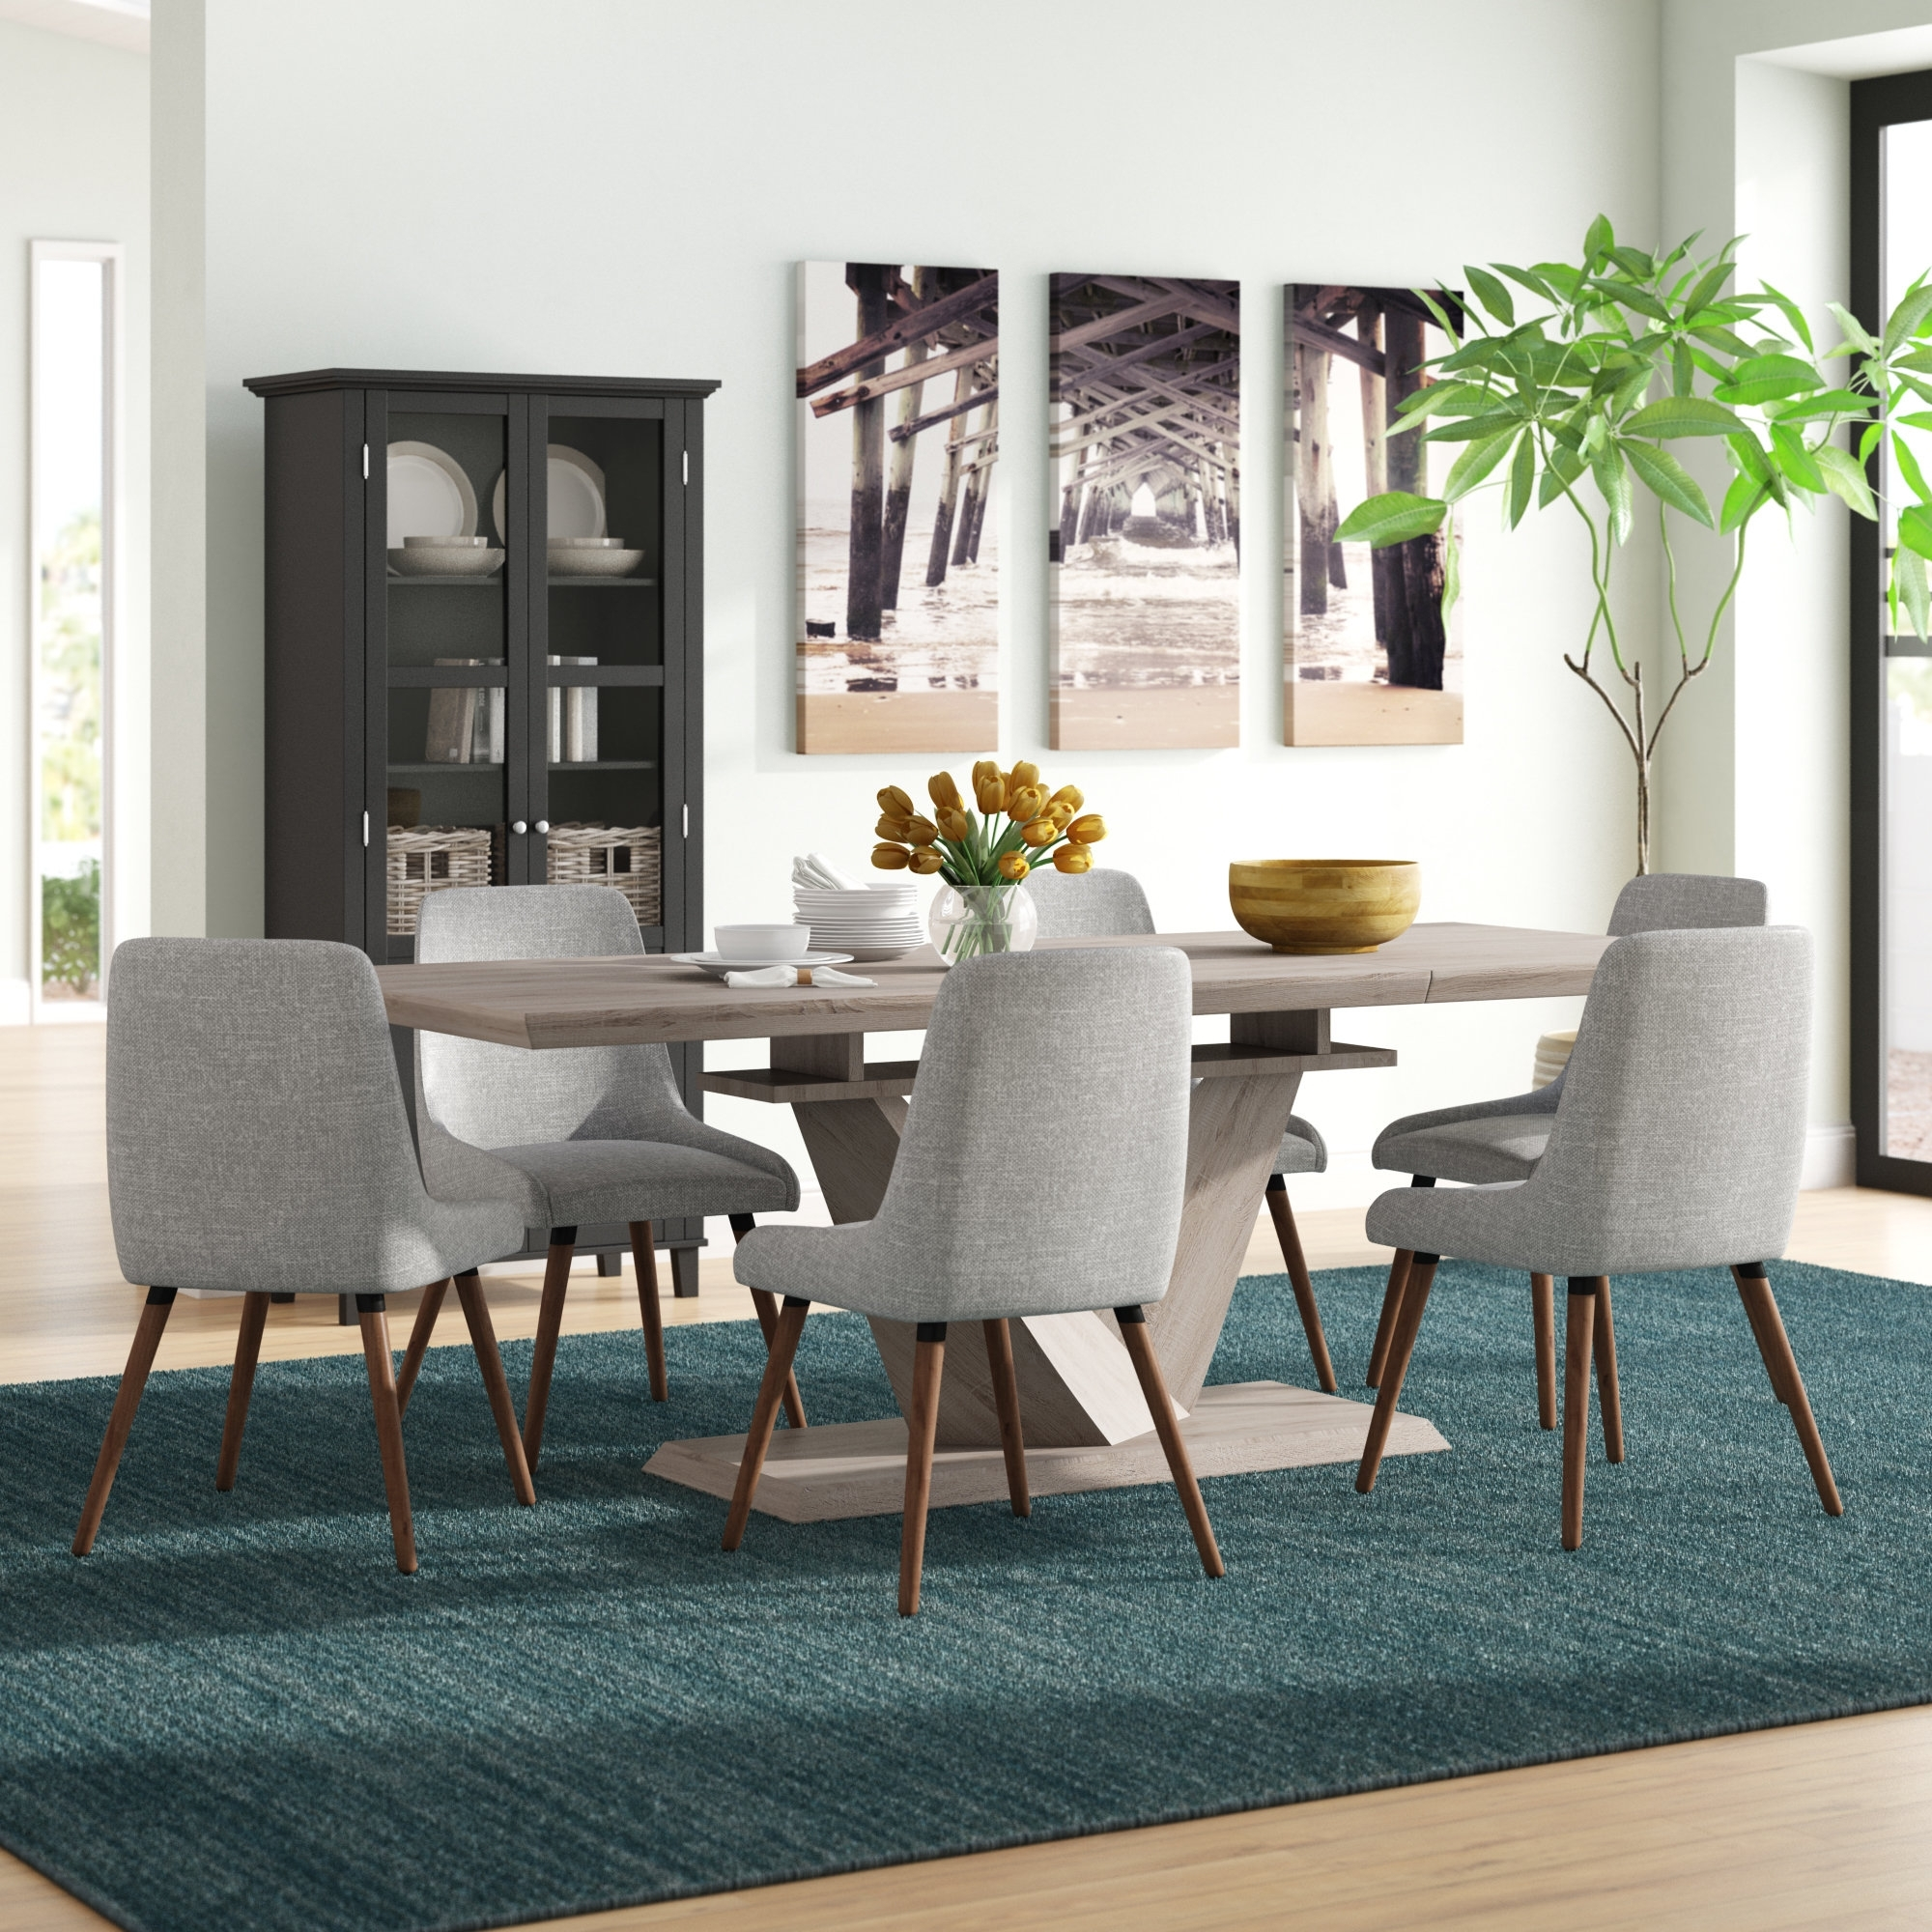 Simmers 7 Piece Dining Set | Allmodern For Most Popular Walden 7 Piece Extension Dining Sets (Image 8 of 20)